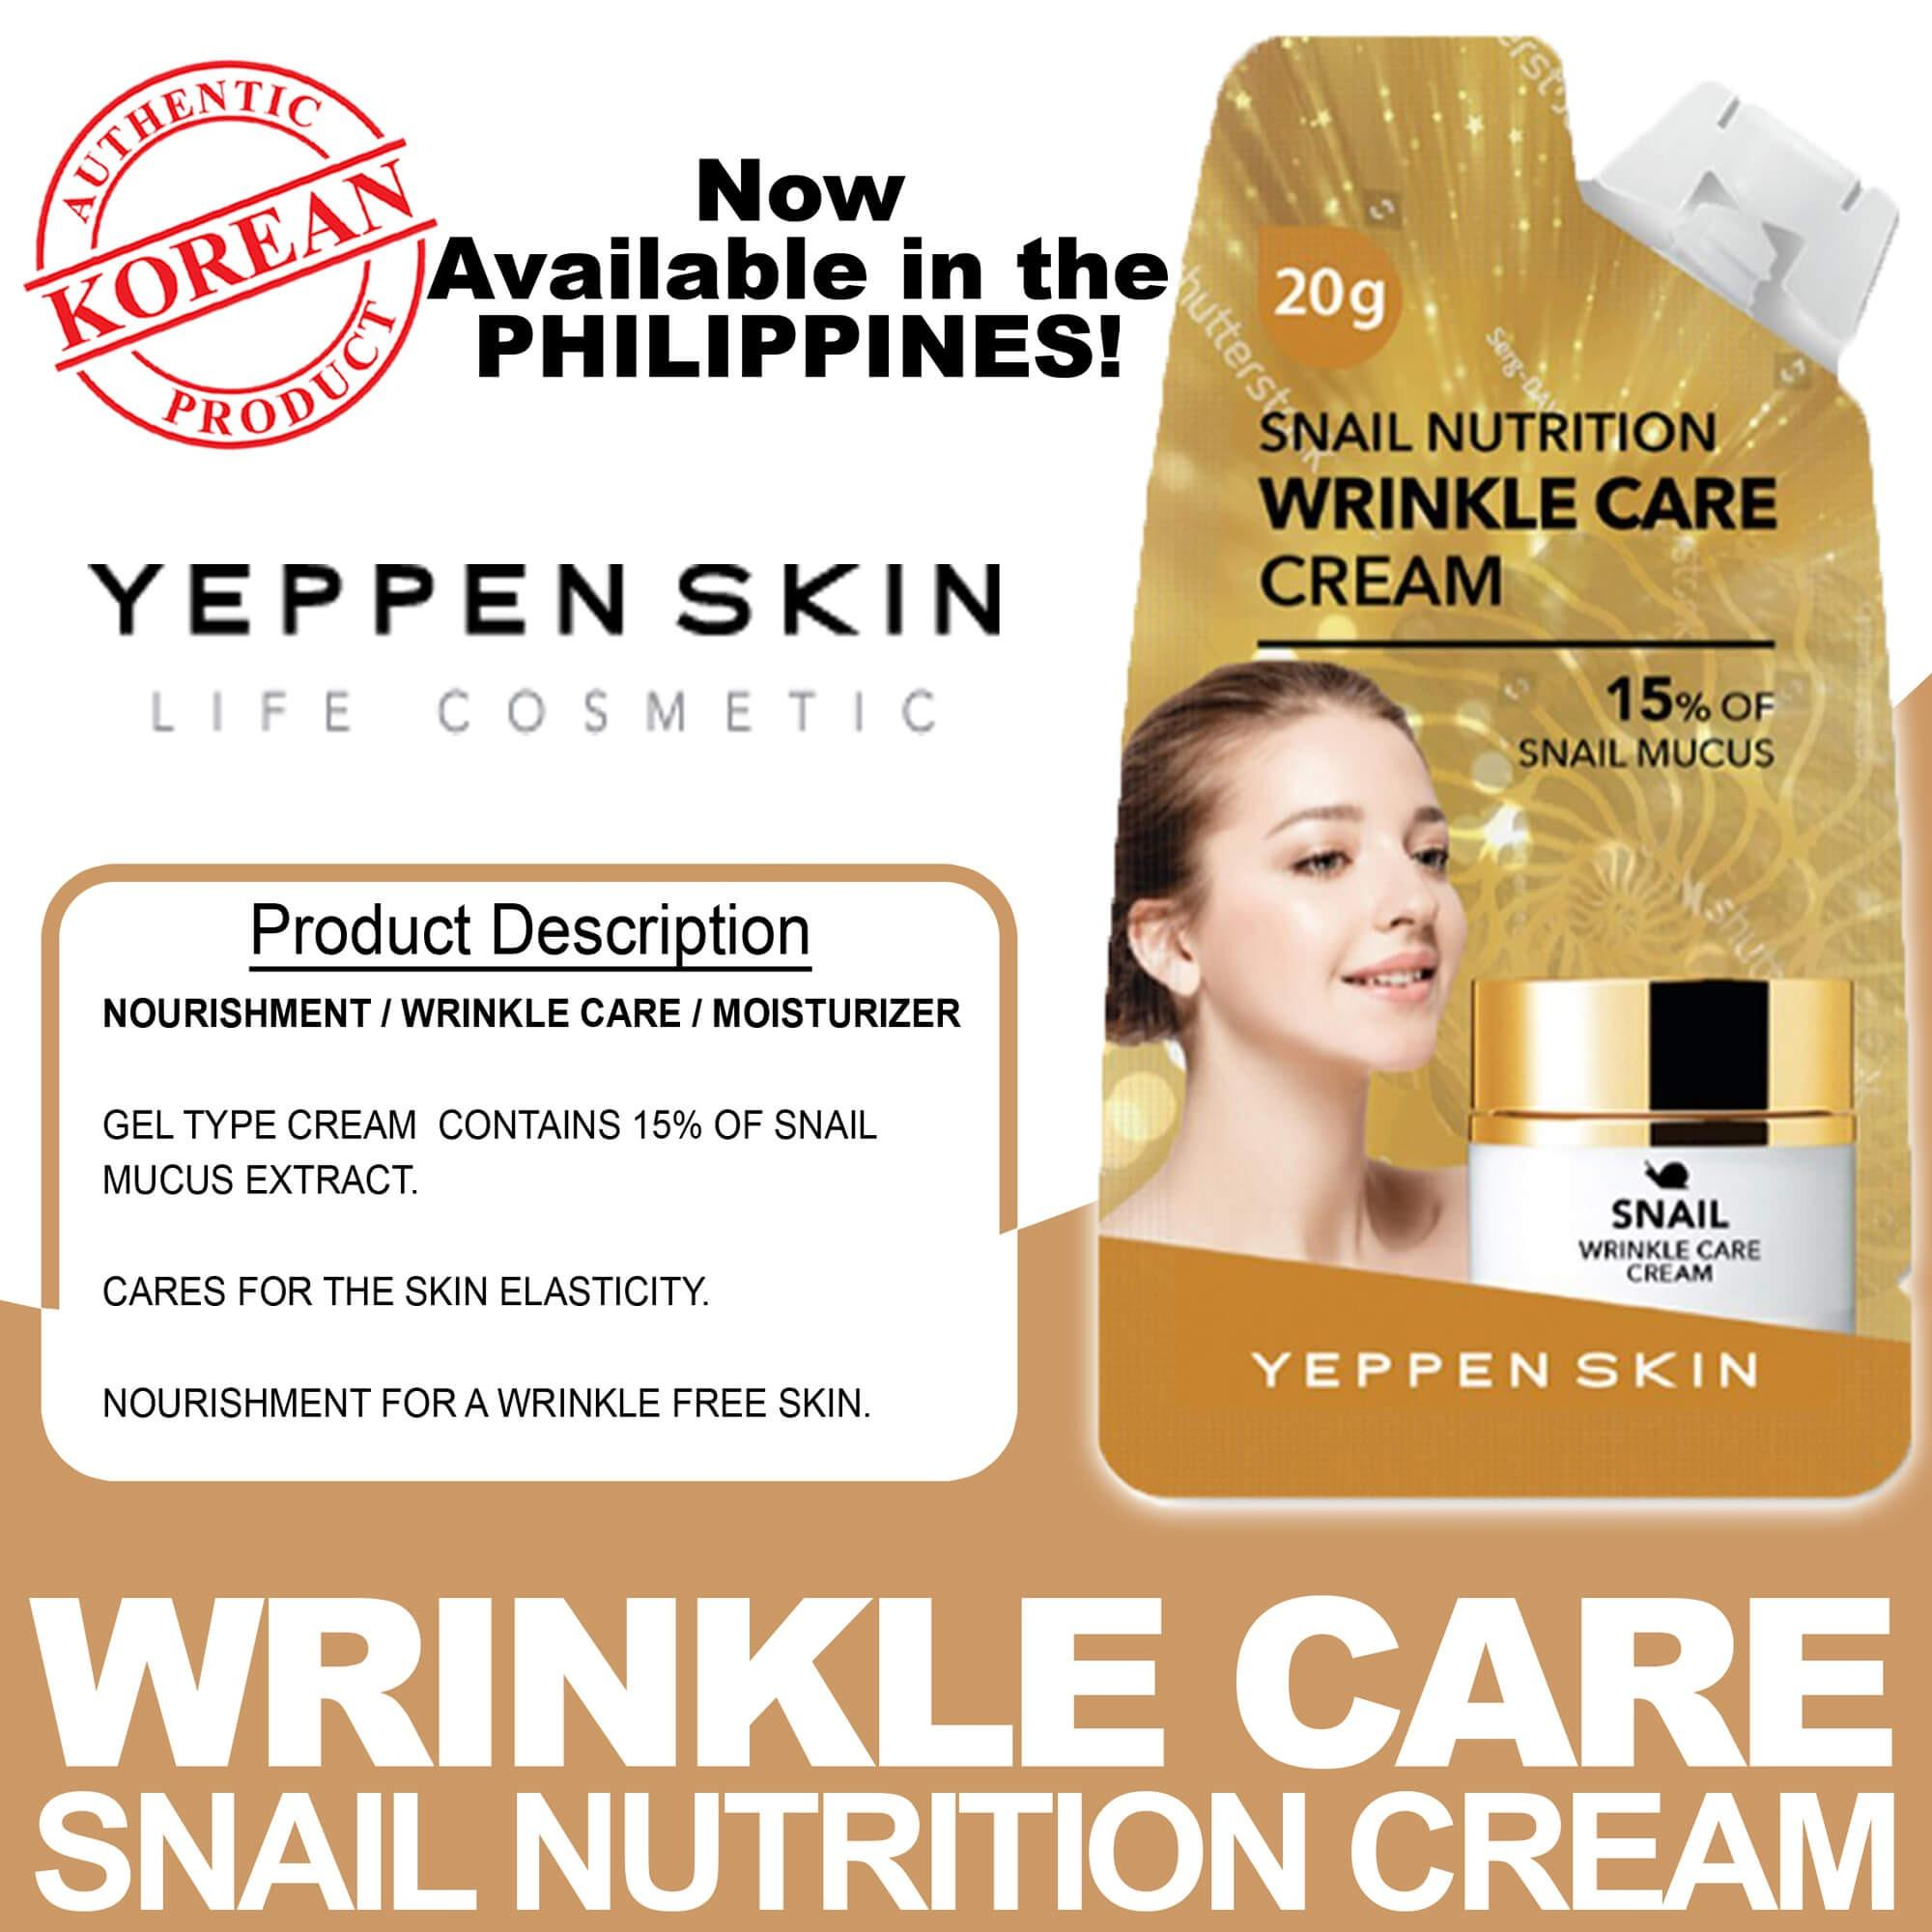 Snail Nutrition Wrinkle Care Cream Delivers Finest Nutrients that Skin Needs Yeppen skin